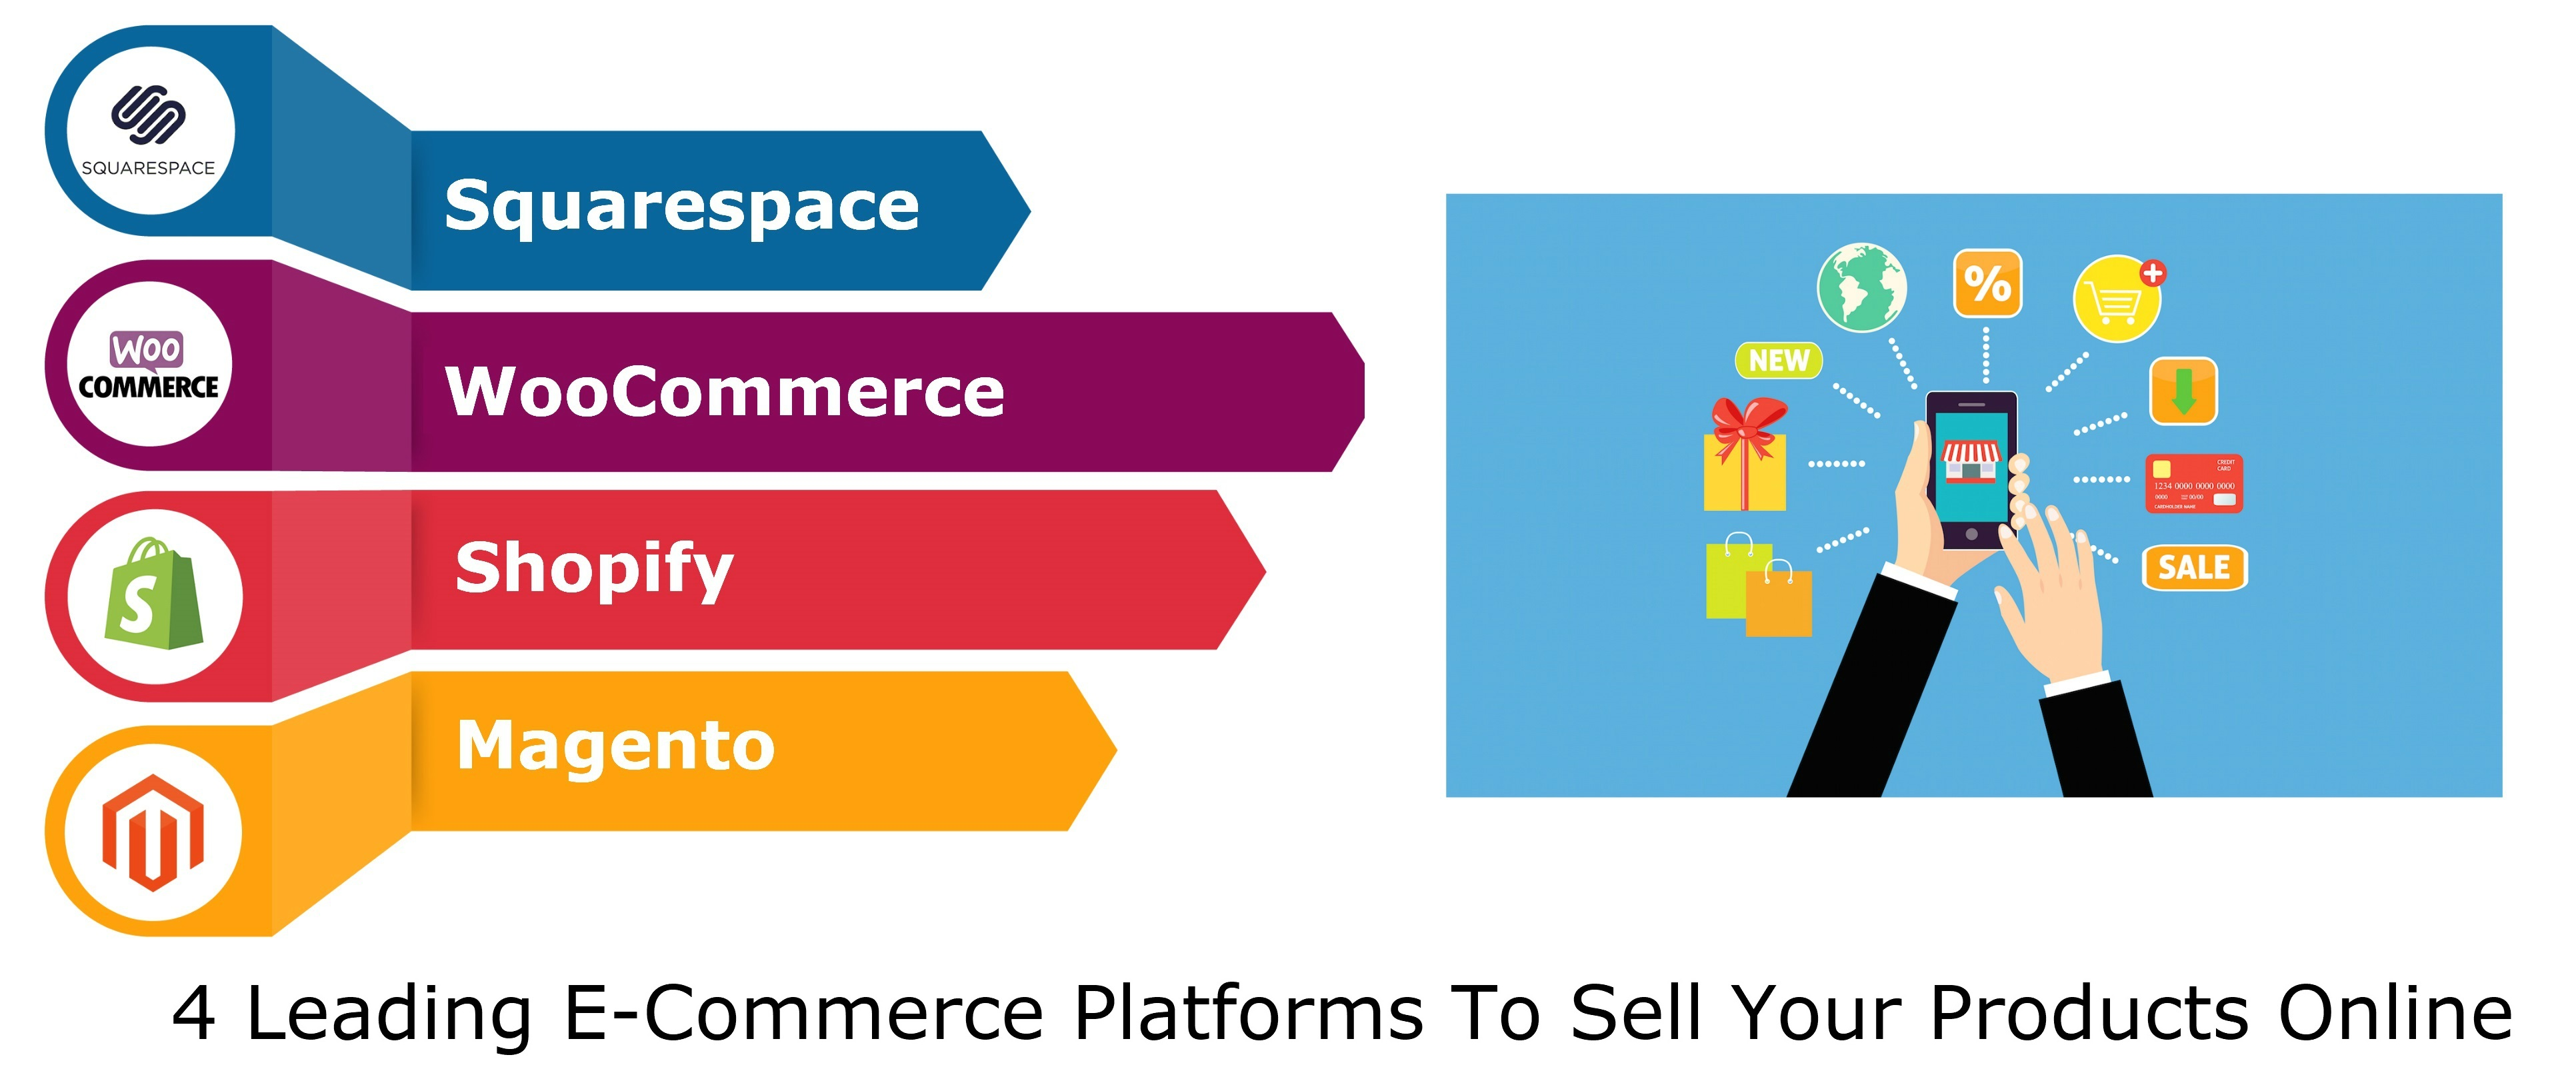 4 Leading E-Commerce Platforms To Sell Your Products Online